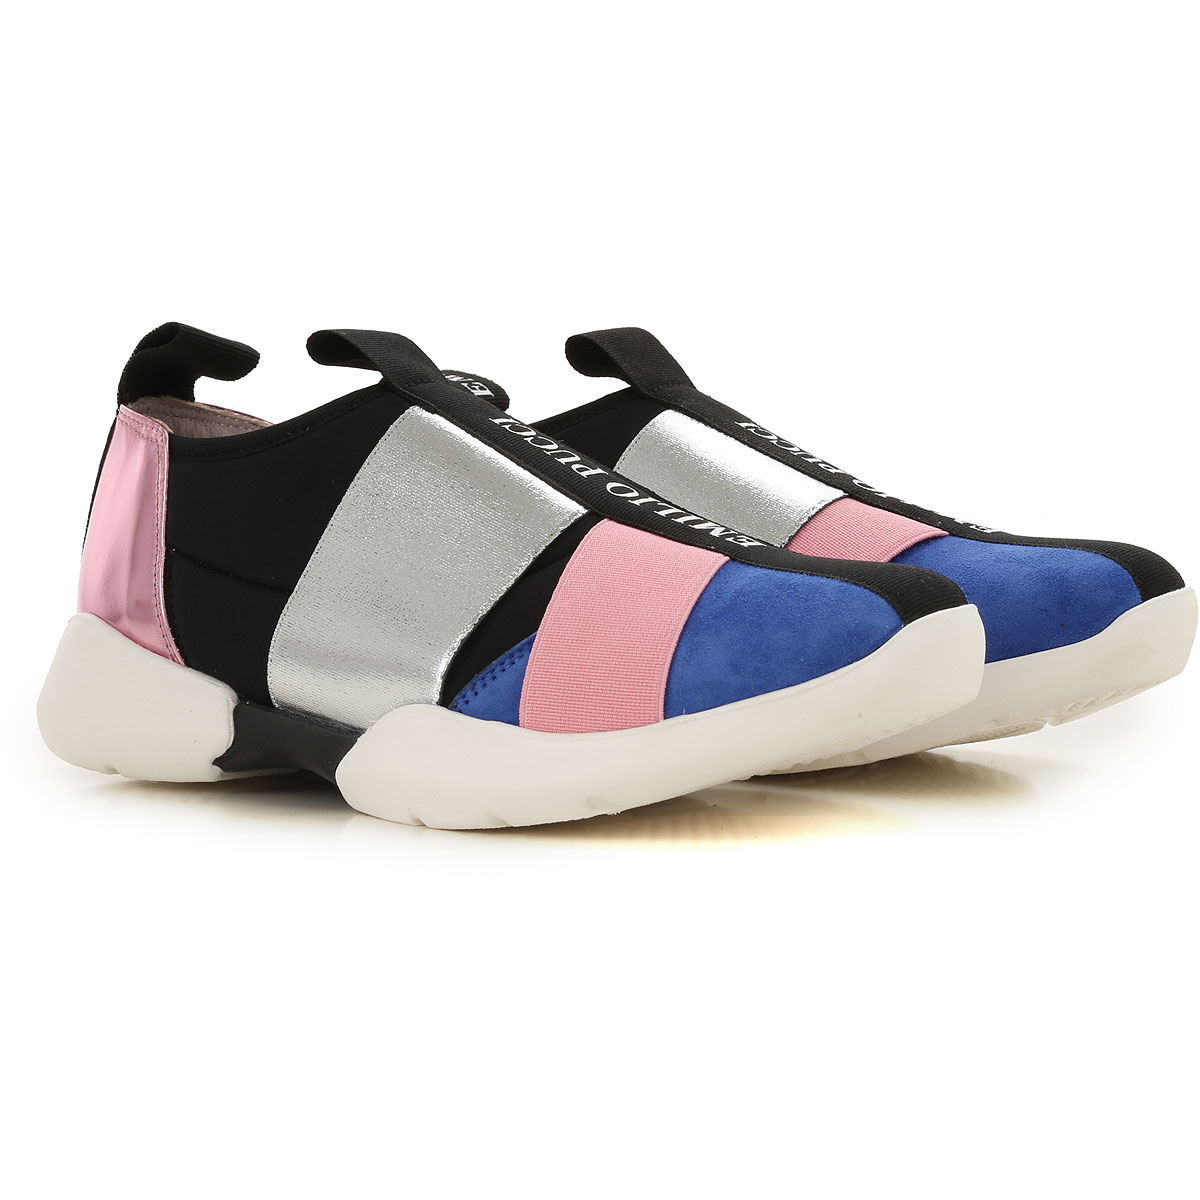 Image of Emilio Pucci Sneakers, Silver, polyurethane, 2017, 31 32 33 34 35